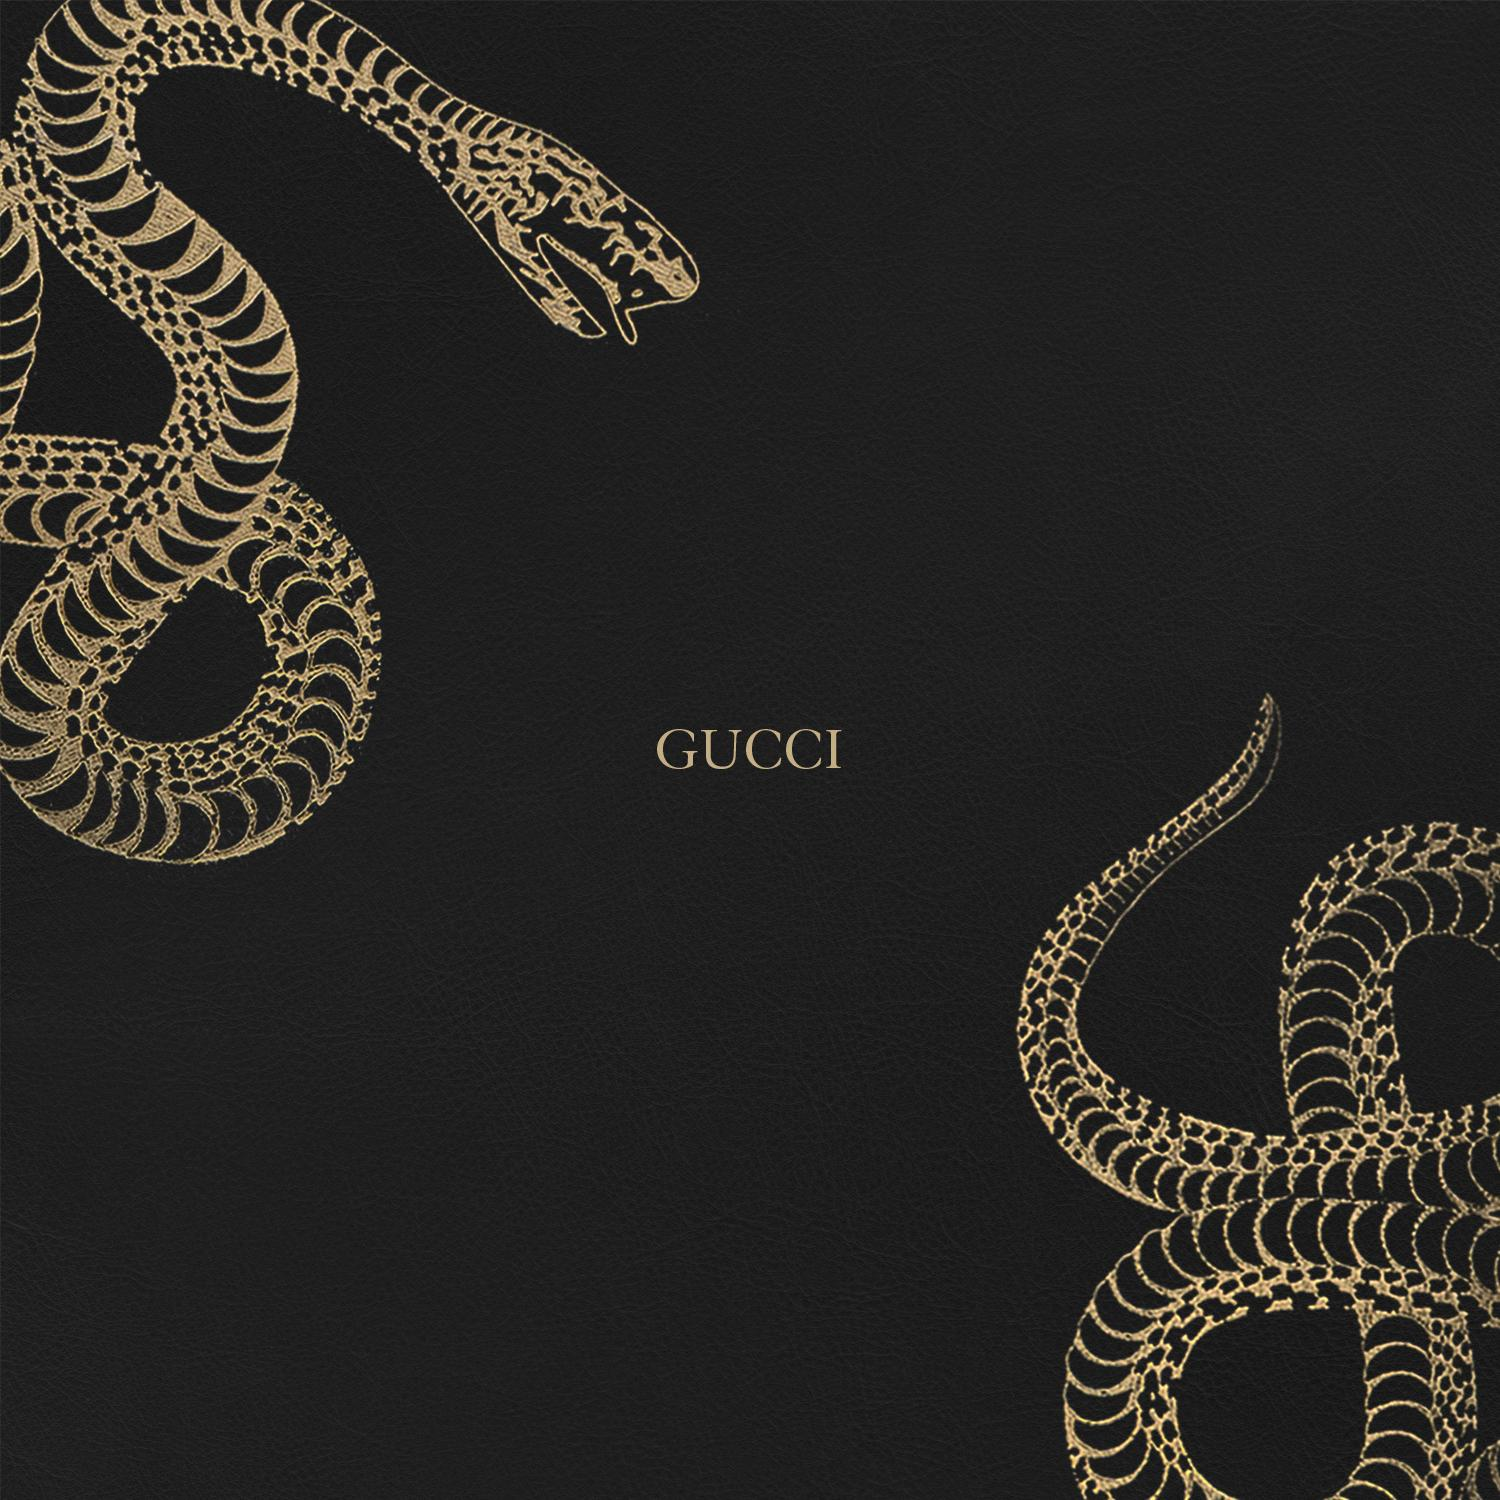 Gucci iPhone Wallpapers , Top Free Gucci iPhone Backgrounds